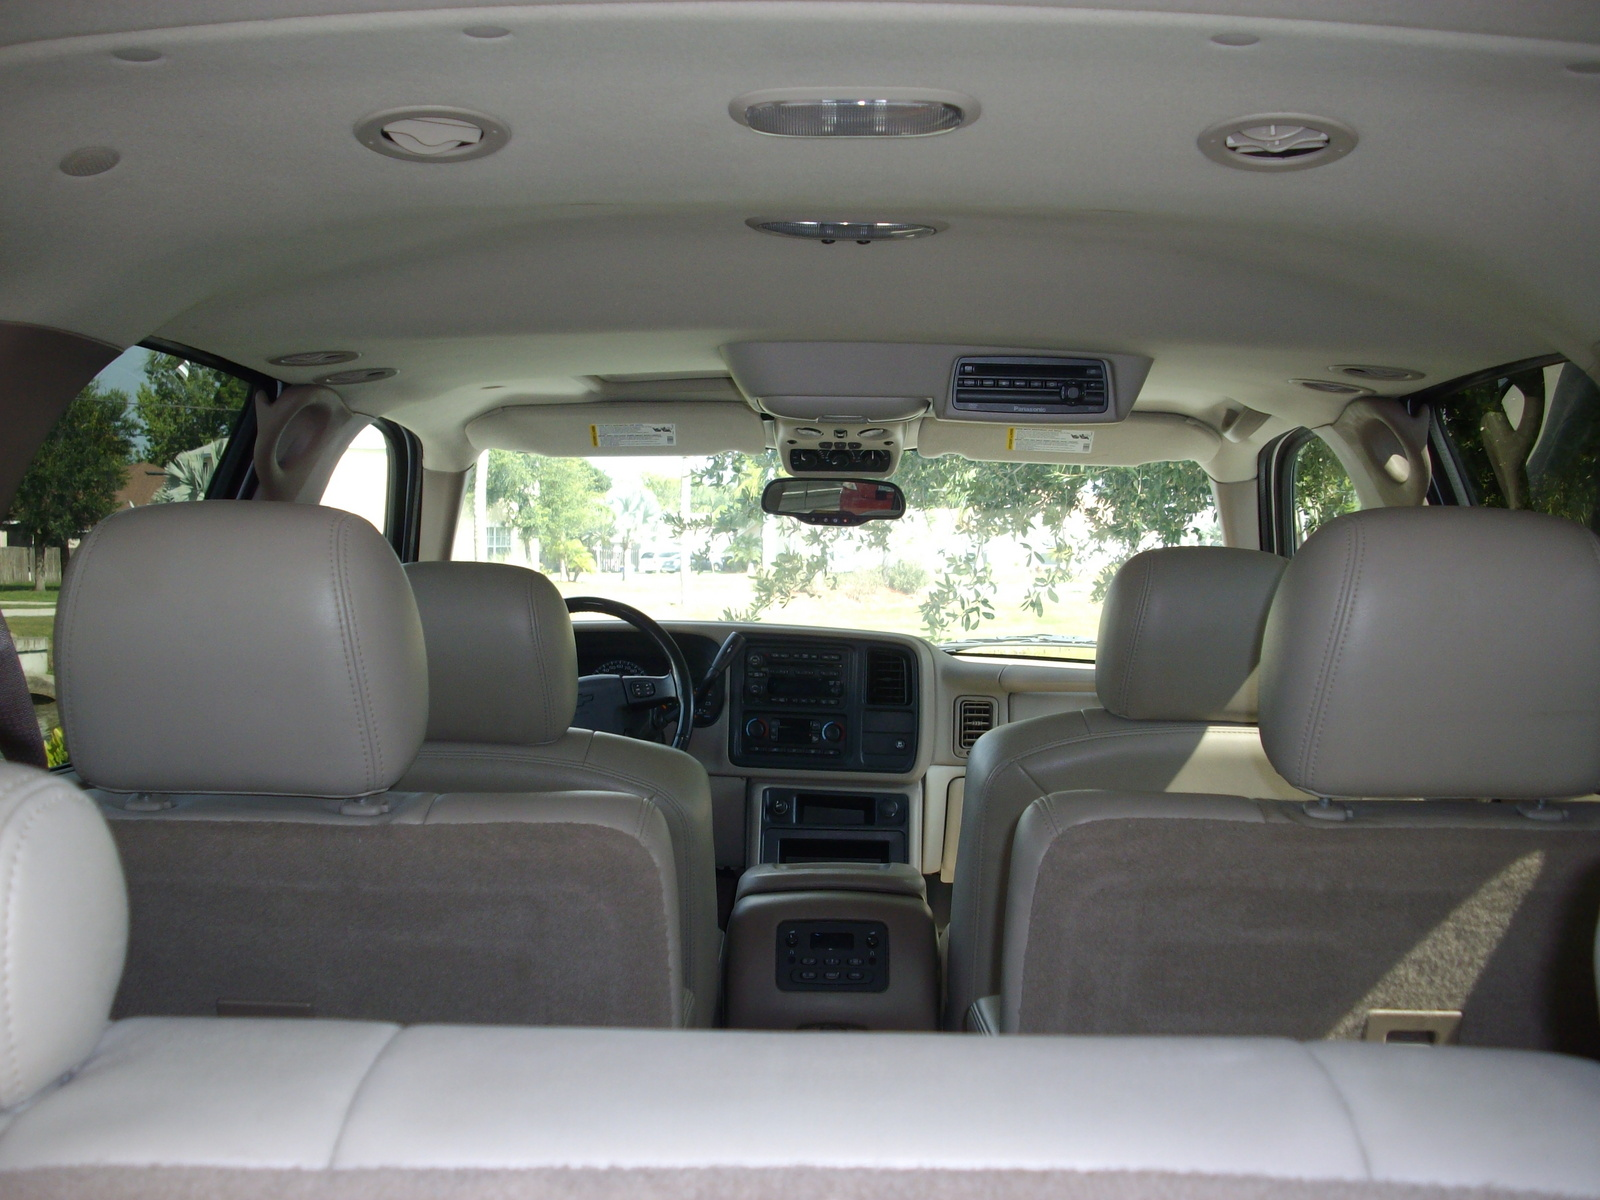 Picture of 2006 chevrolet suburban ls 1500 4wd interior